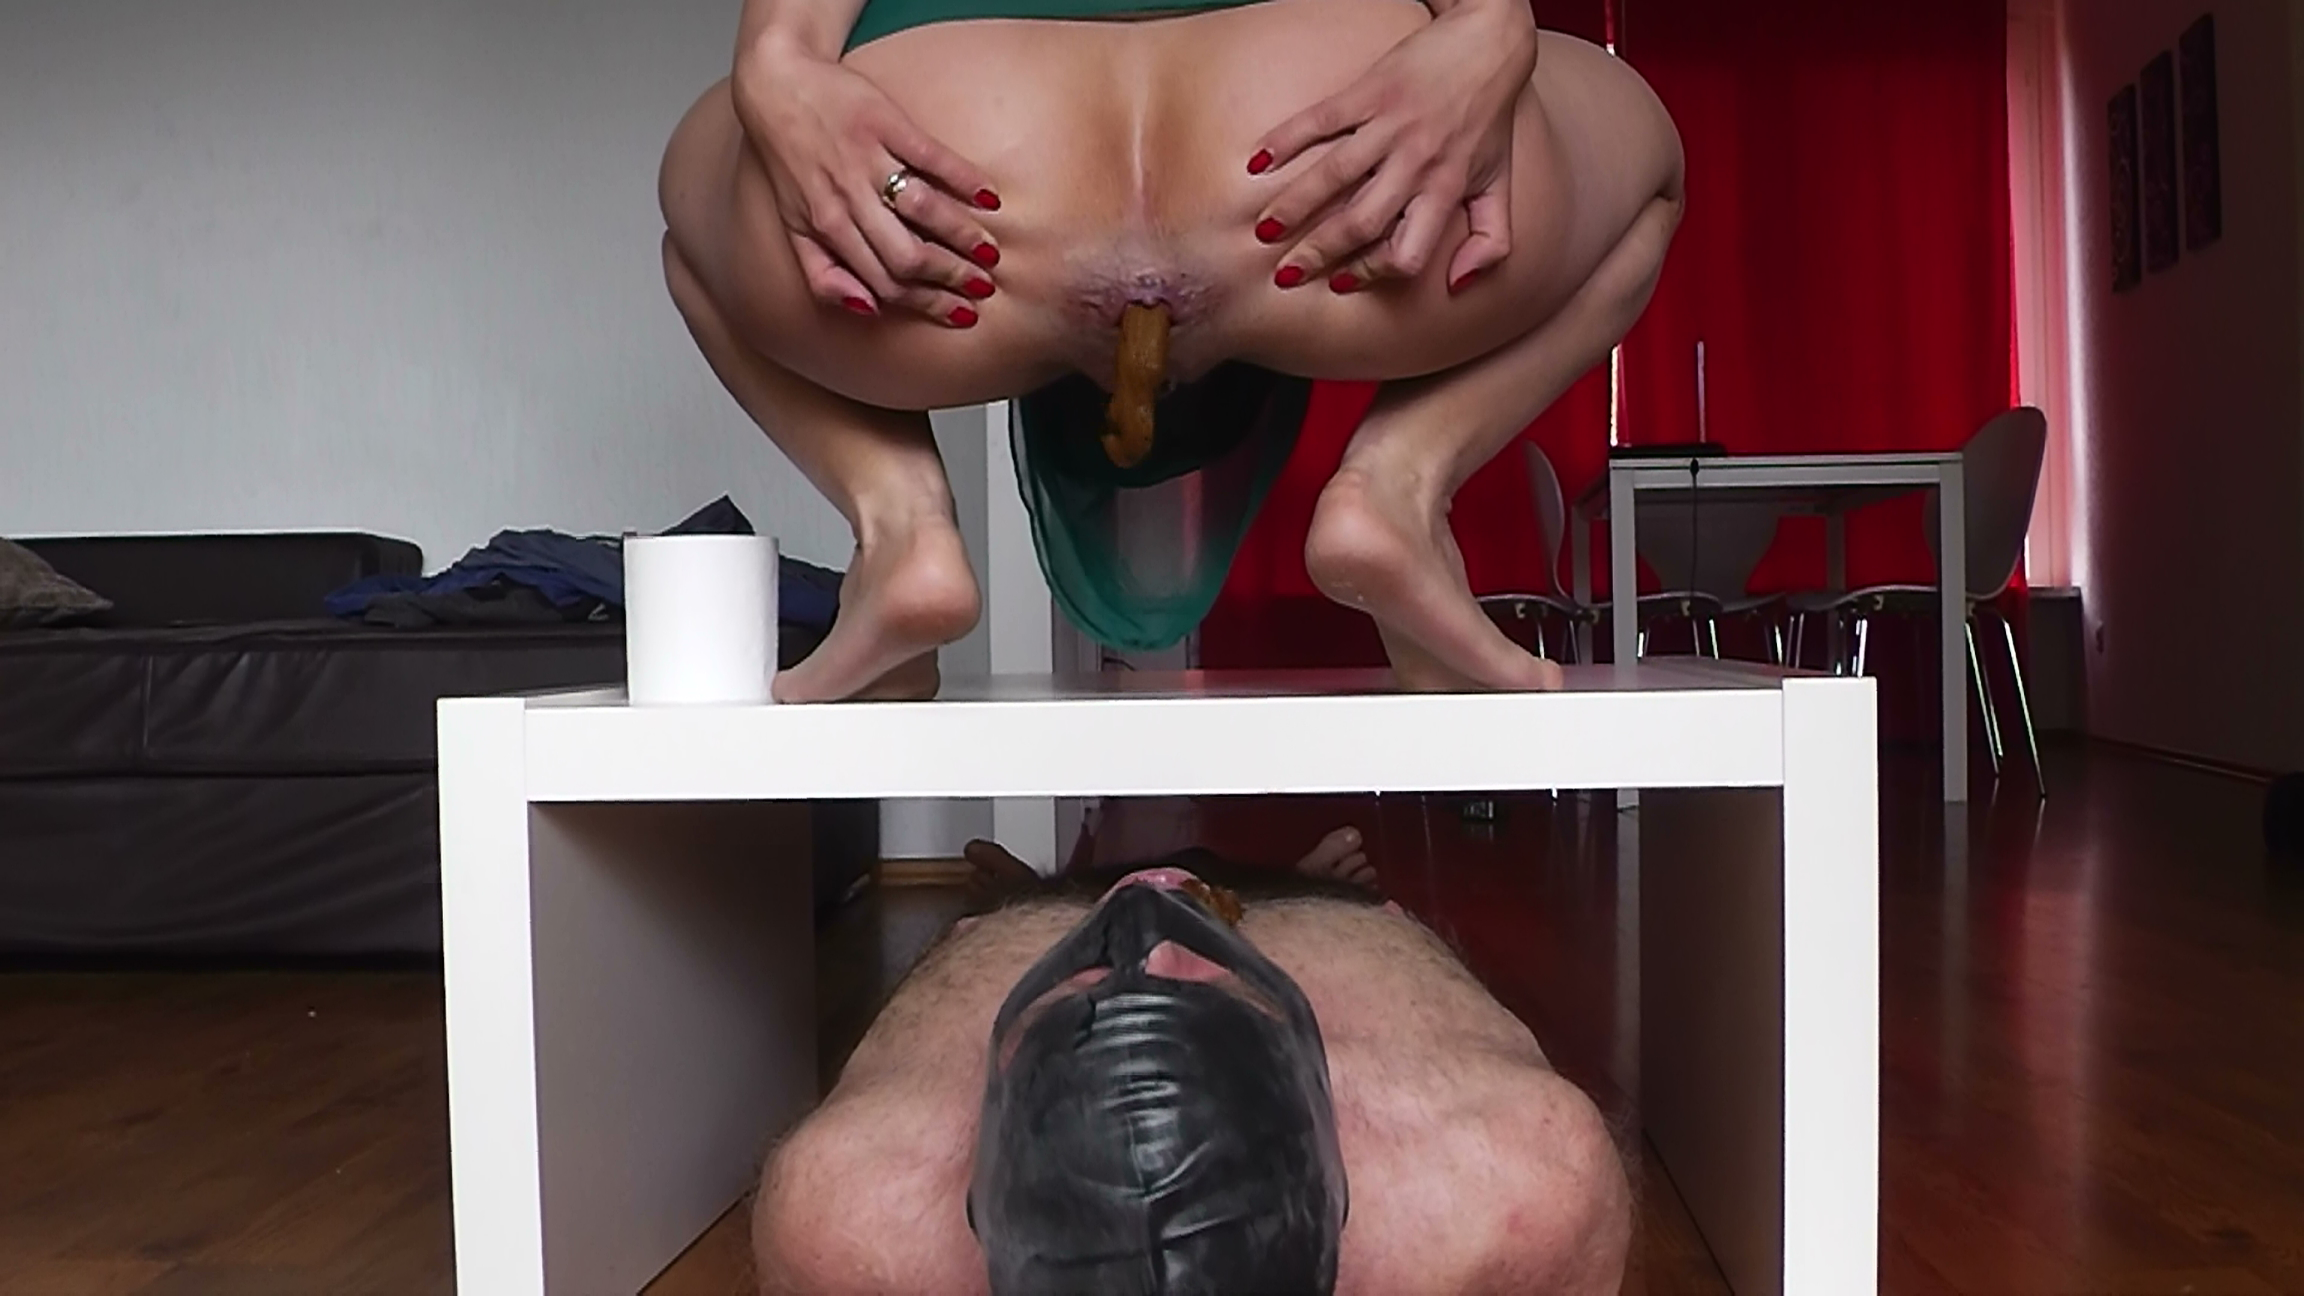 Hd toilet slave porn video download xxx galleries